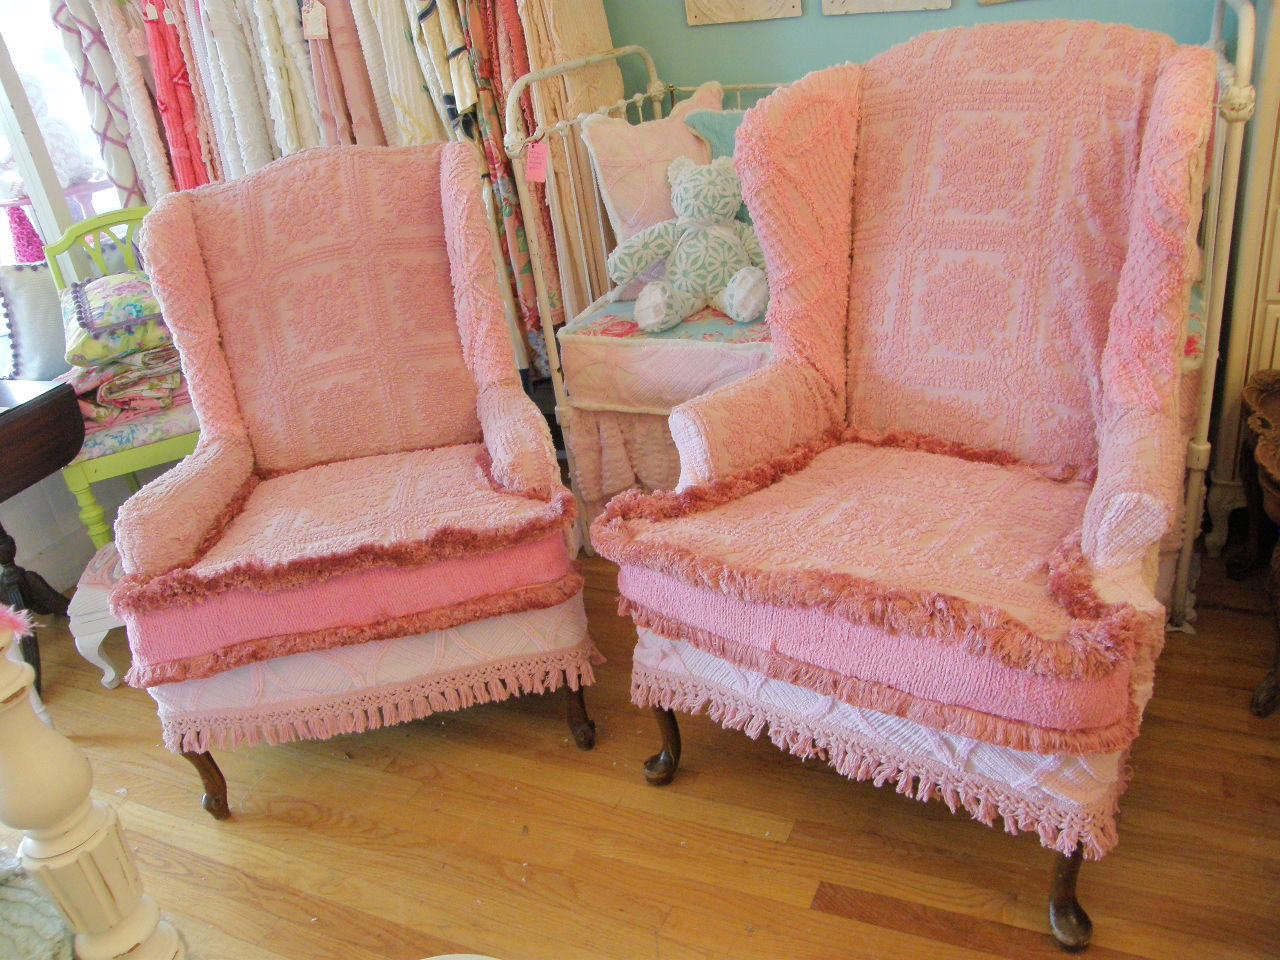 Vintage Chic Furniture Schenectady NY: Pink Chairs With